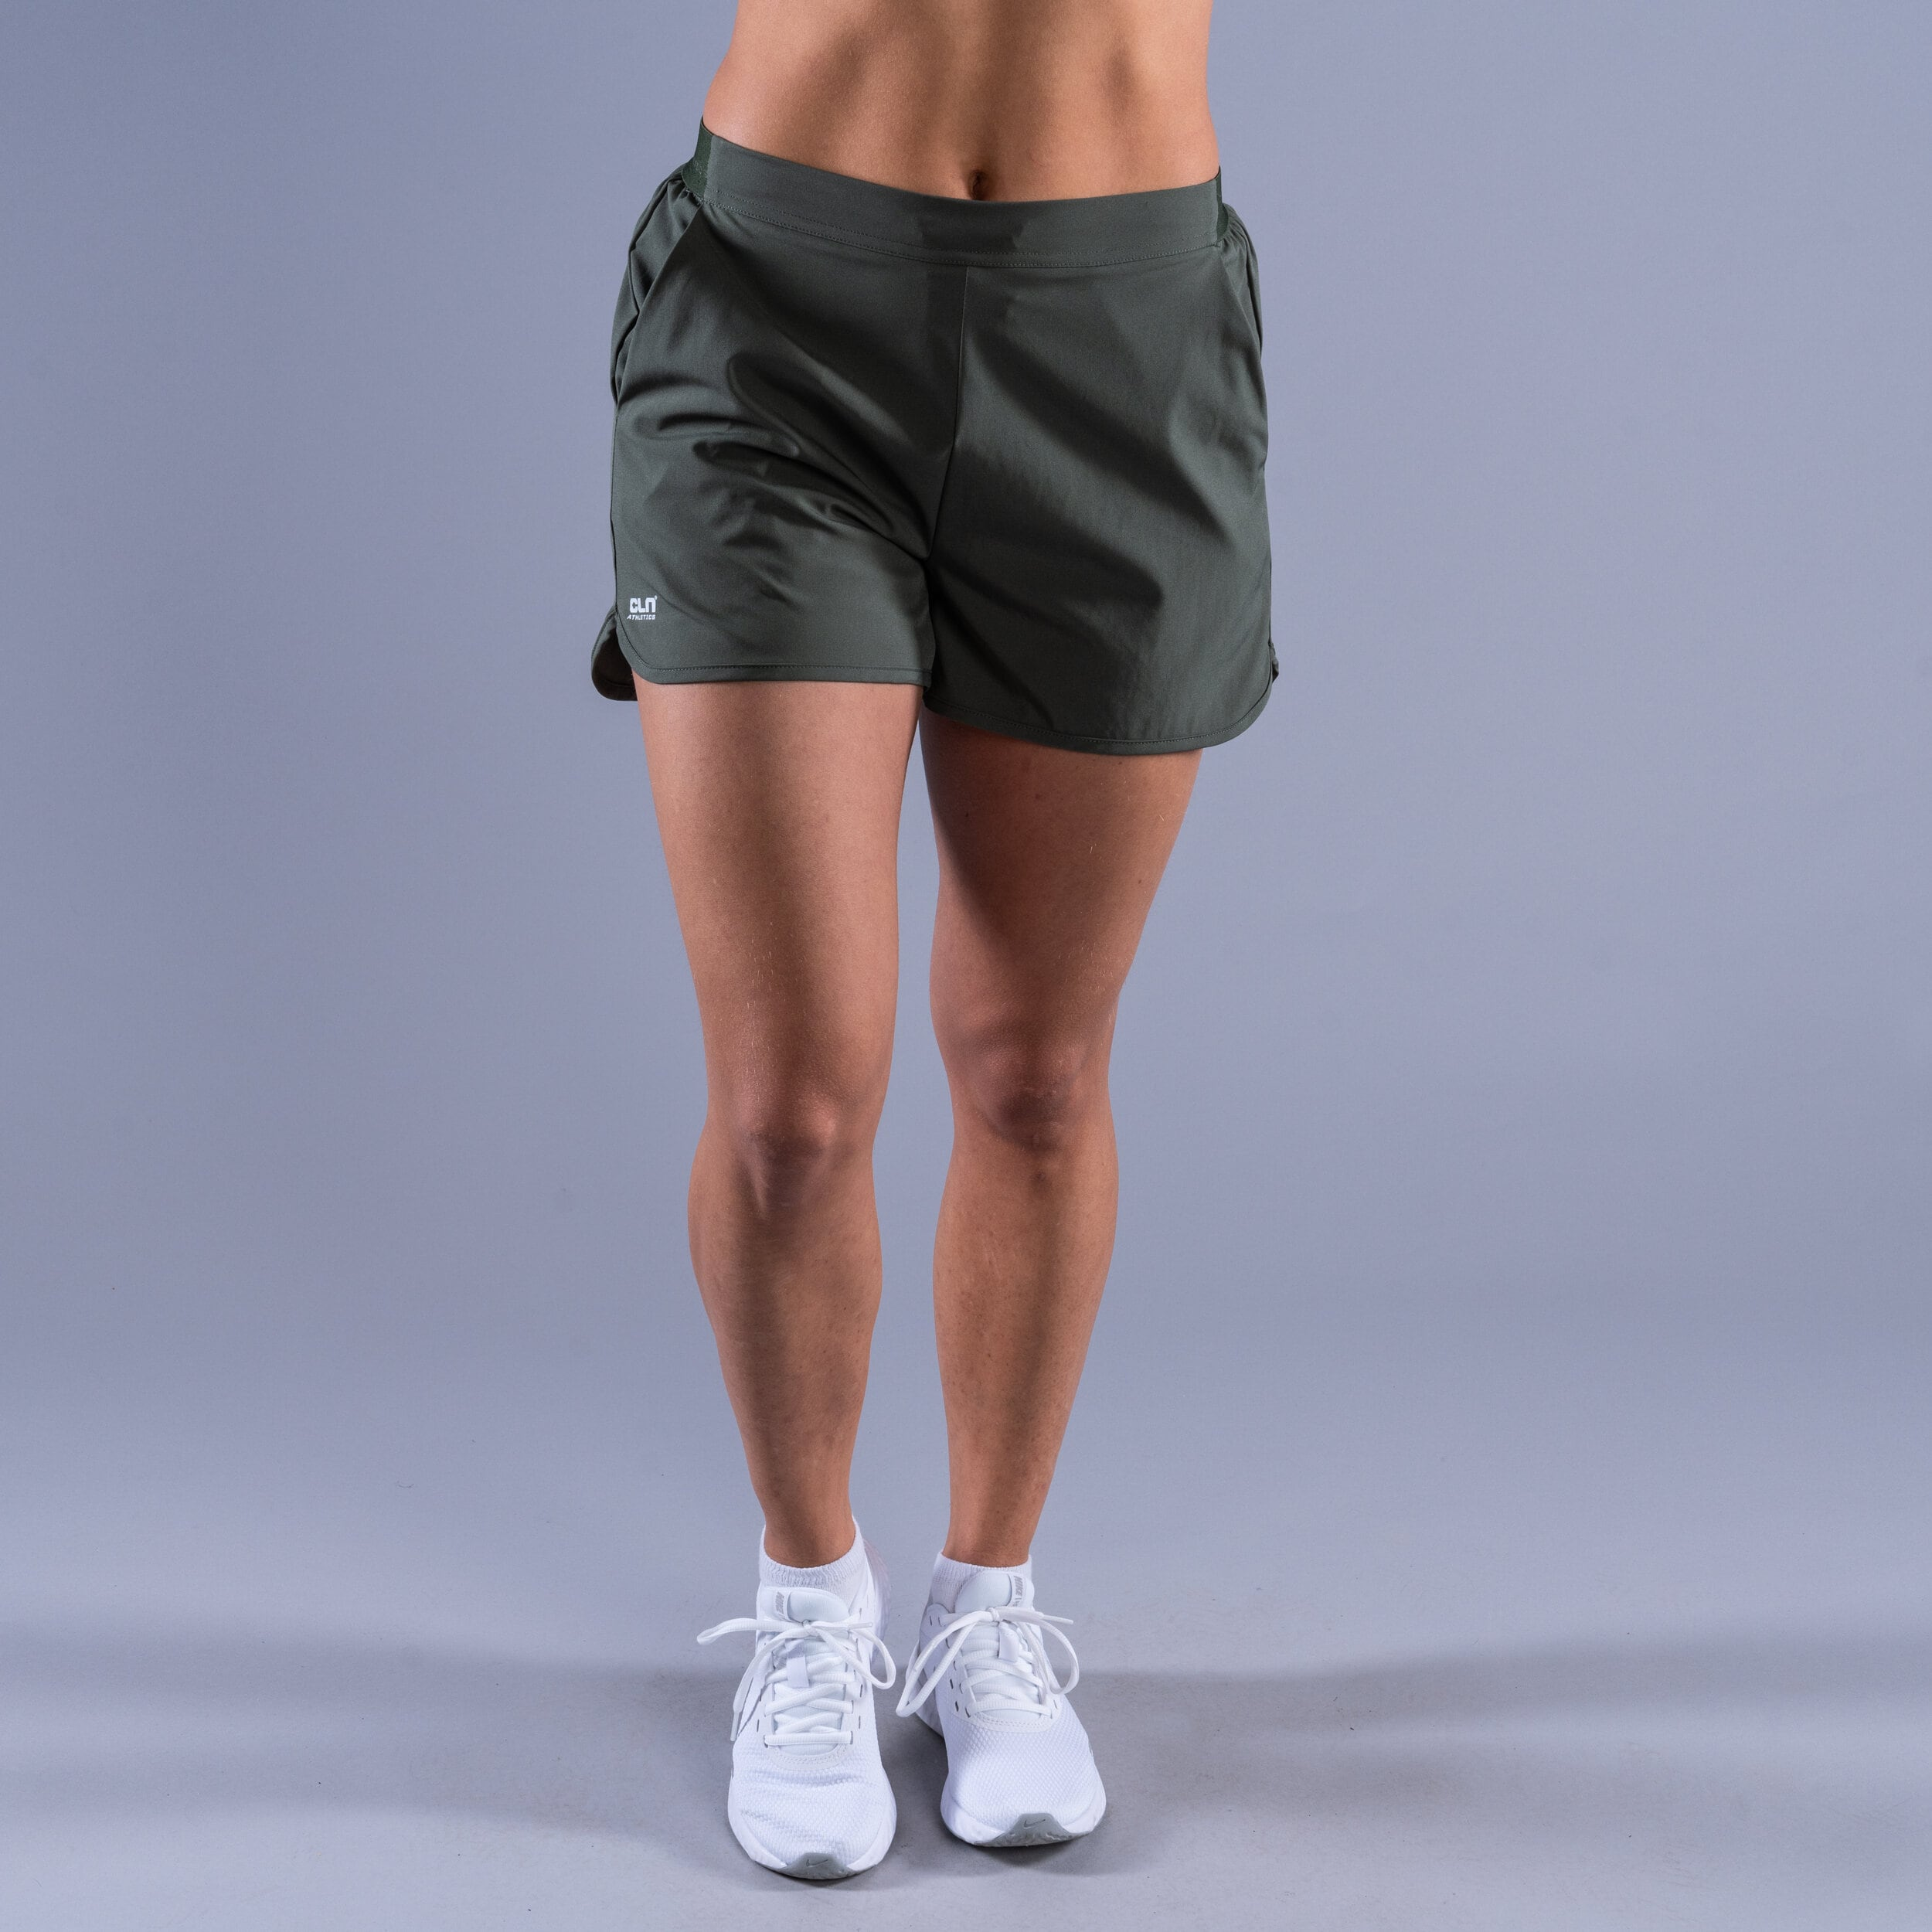 CLN Action ws stretch shorts Moss green